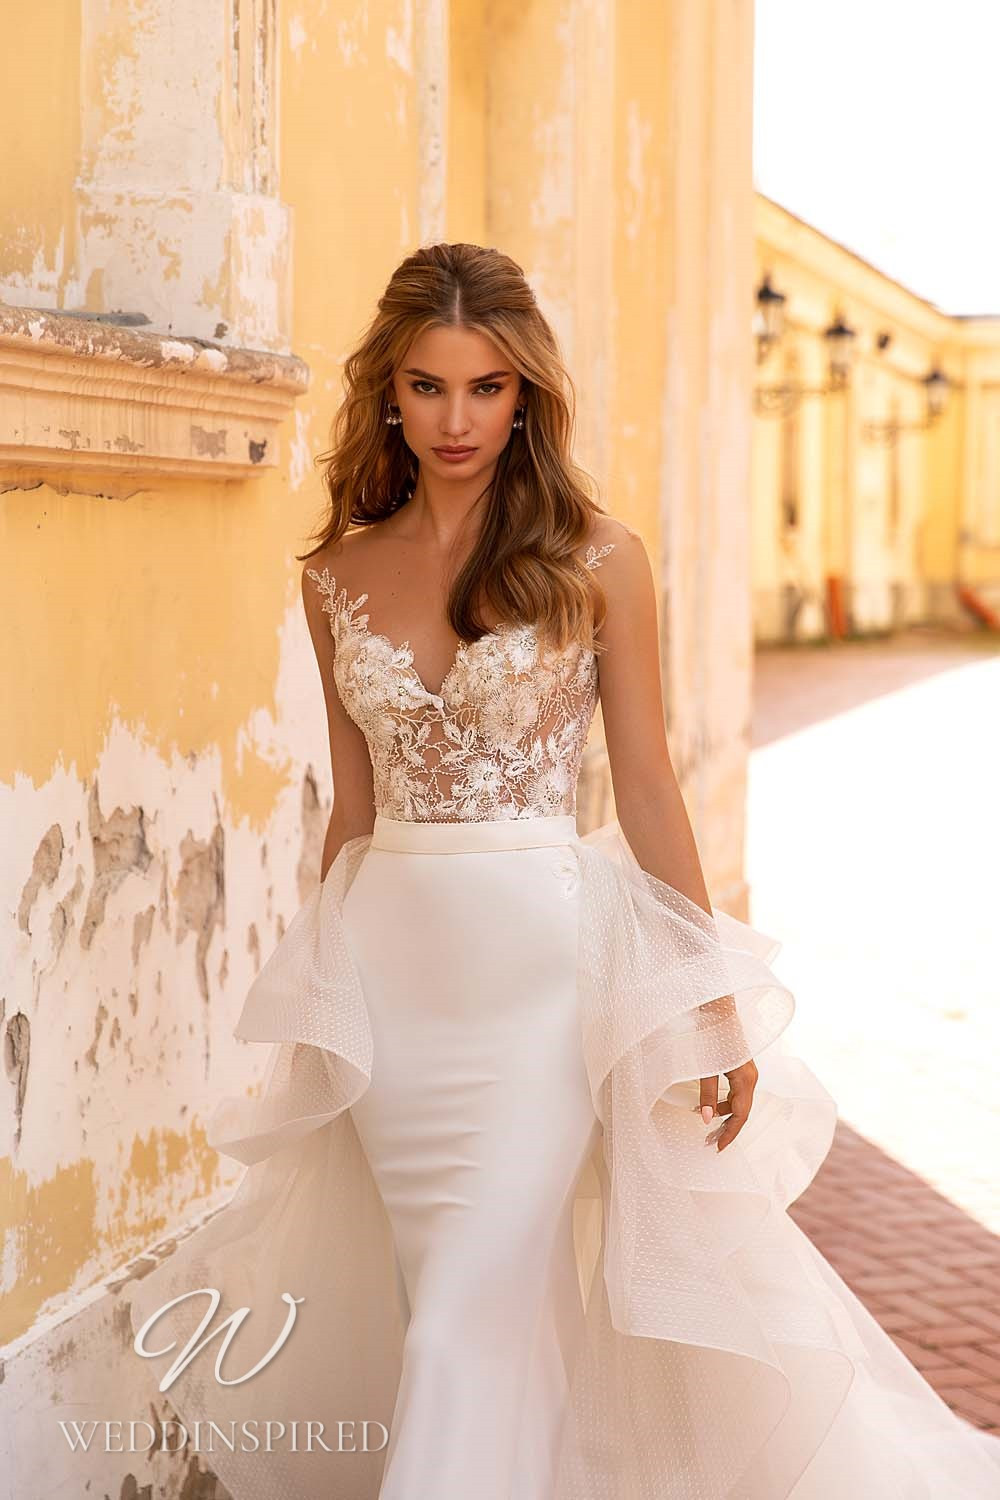 A WONÁ Concept 2021 lace and satin mermaid wedding dress with a detachable skirt